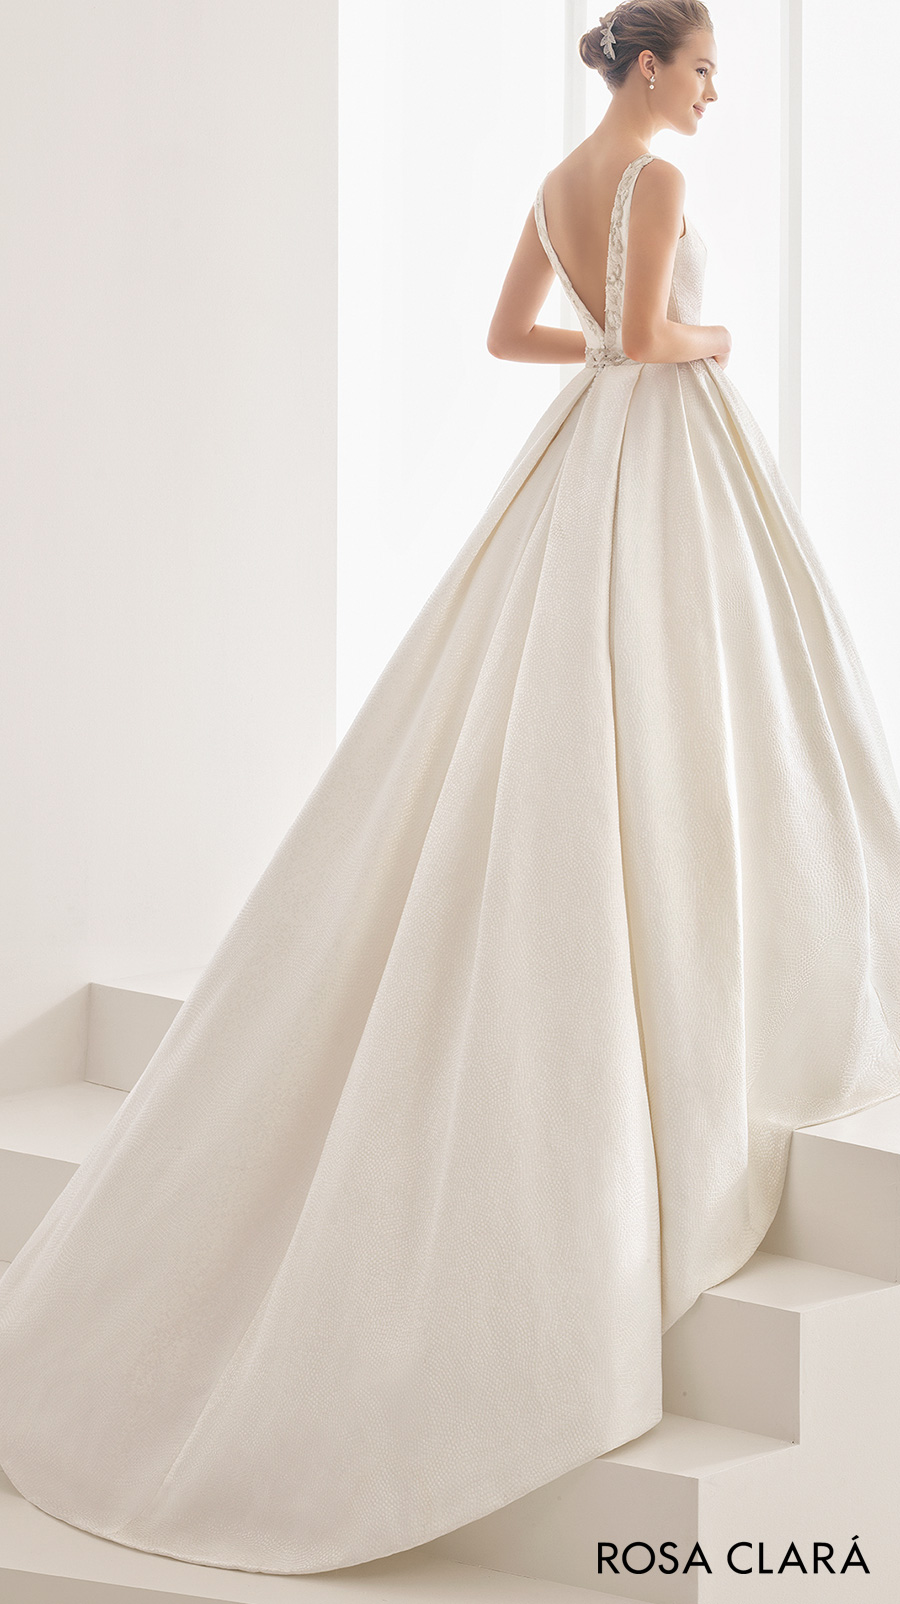 rosa clara 2017 bridal sleeveless bateau neck full embellishment conservative classic ball gown wedding dress pockets low v back chapel train (namibia) bv